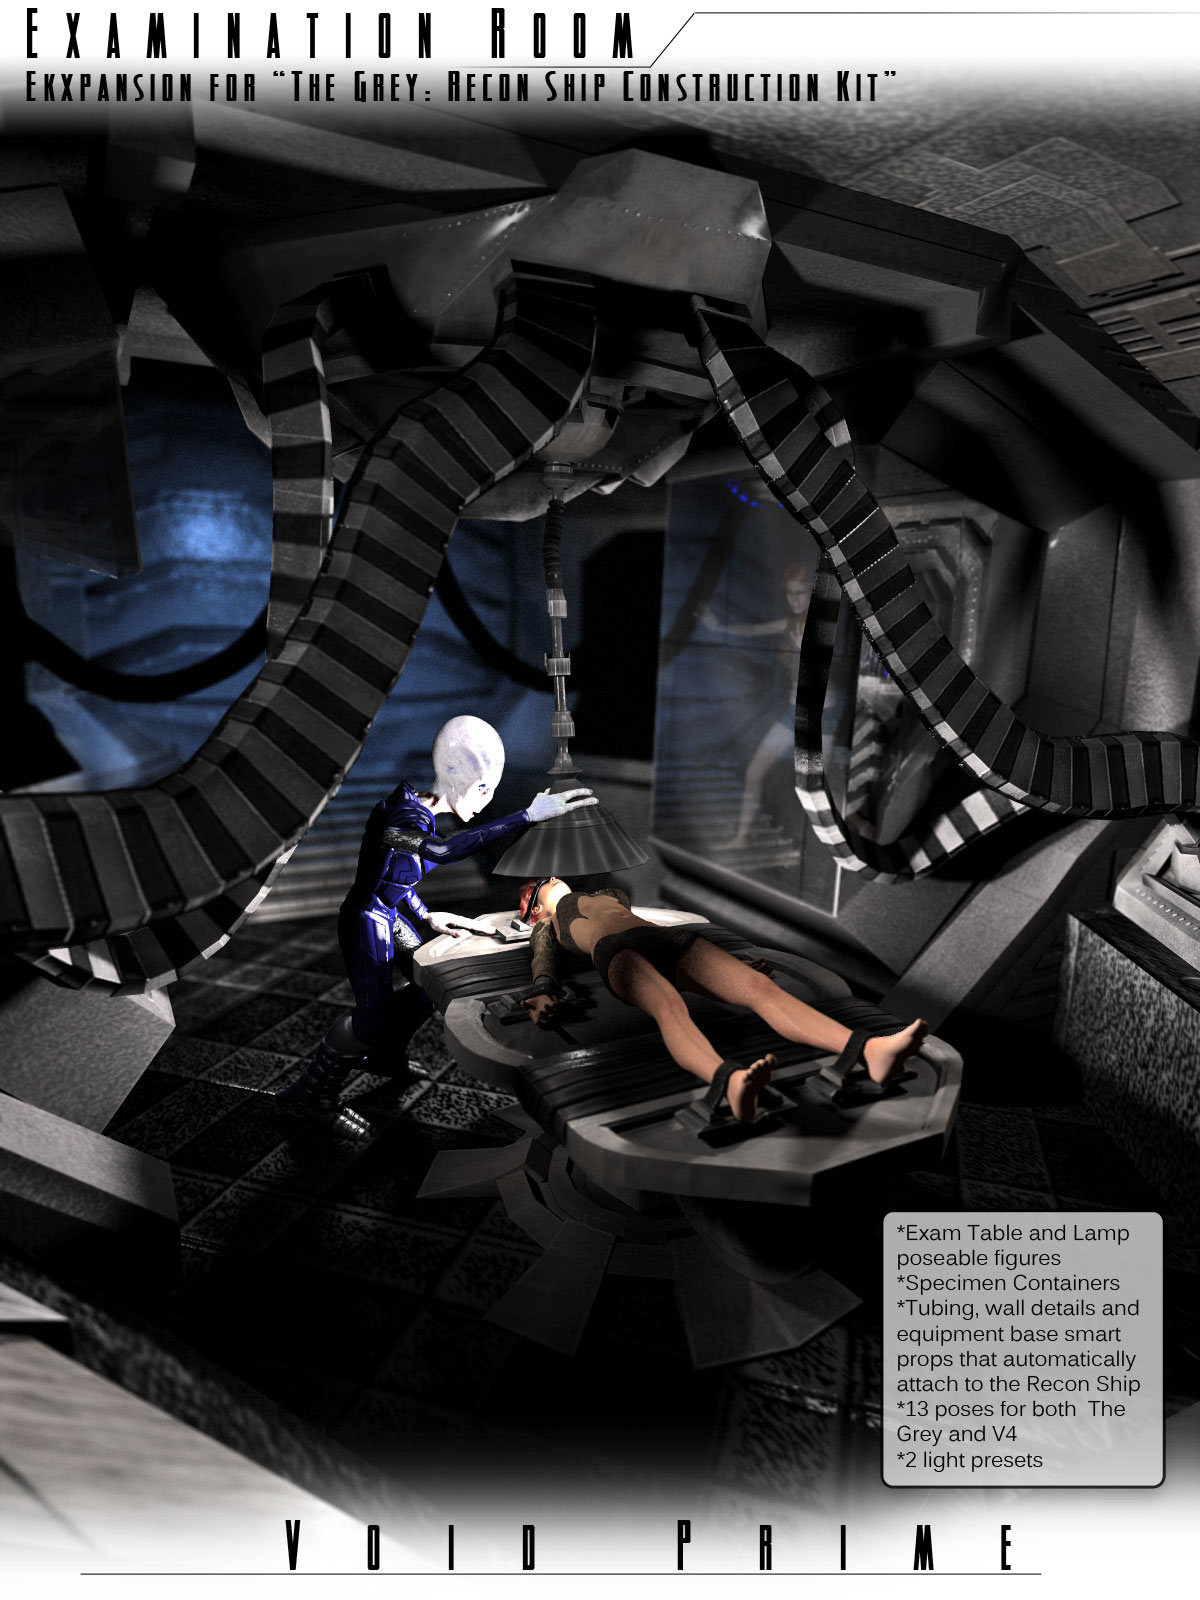 Void Prime: Grey Alien Recon Ship Construction Kit - Exam Room